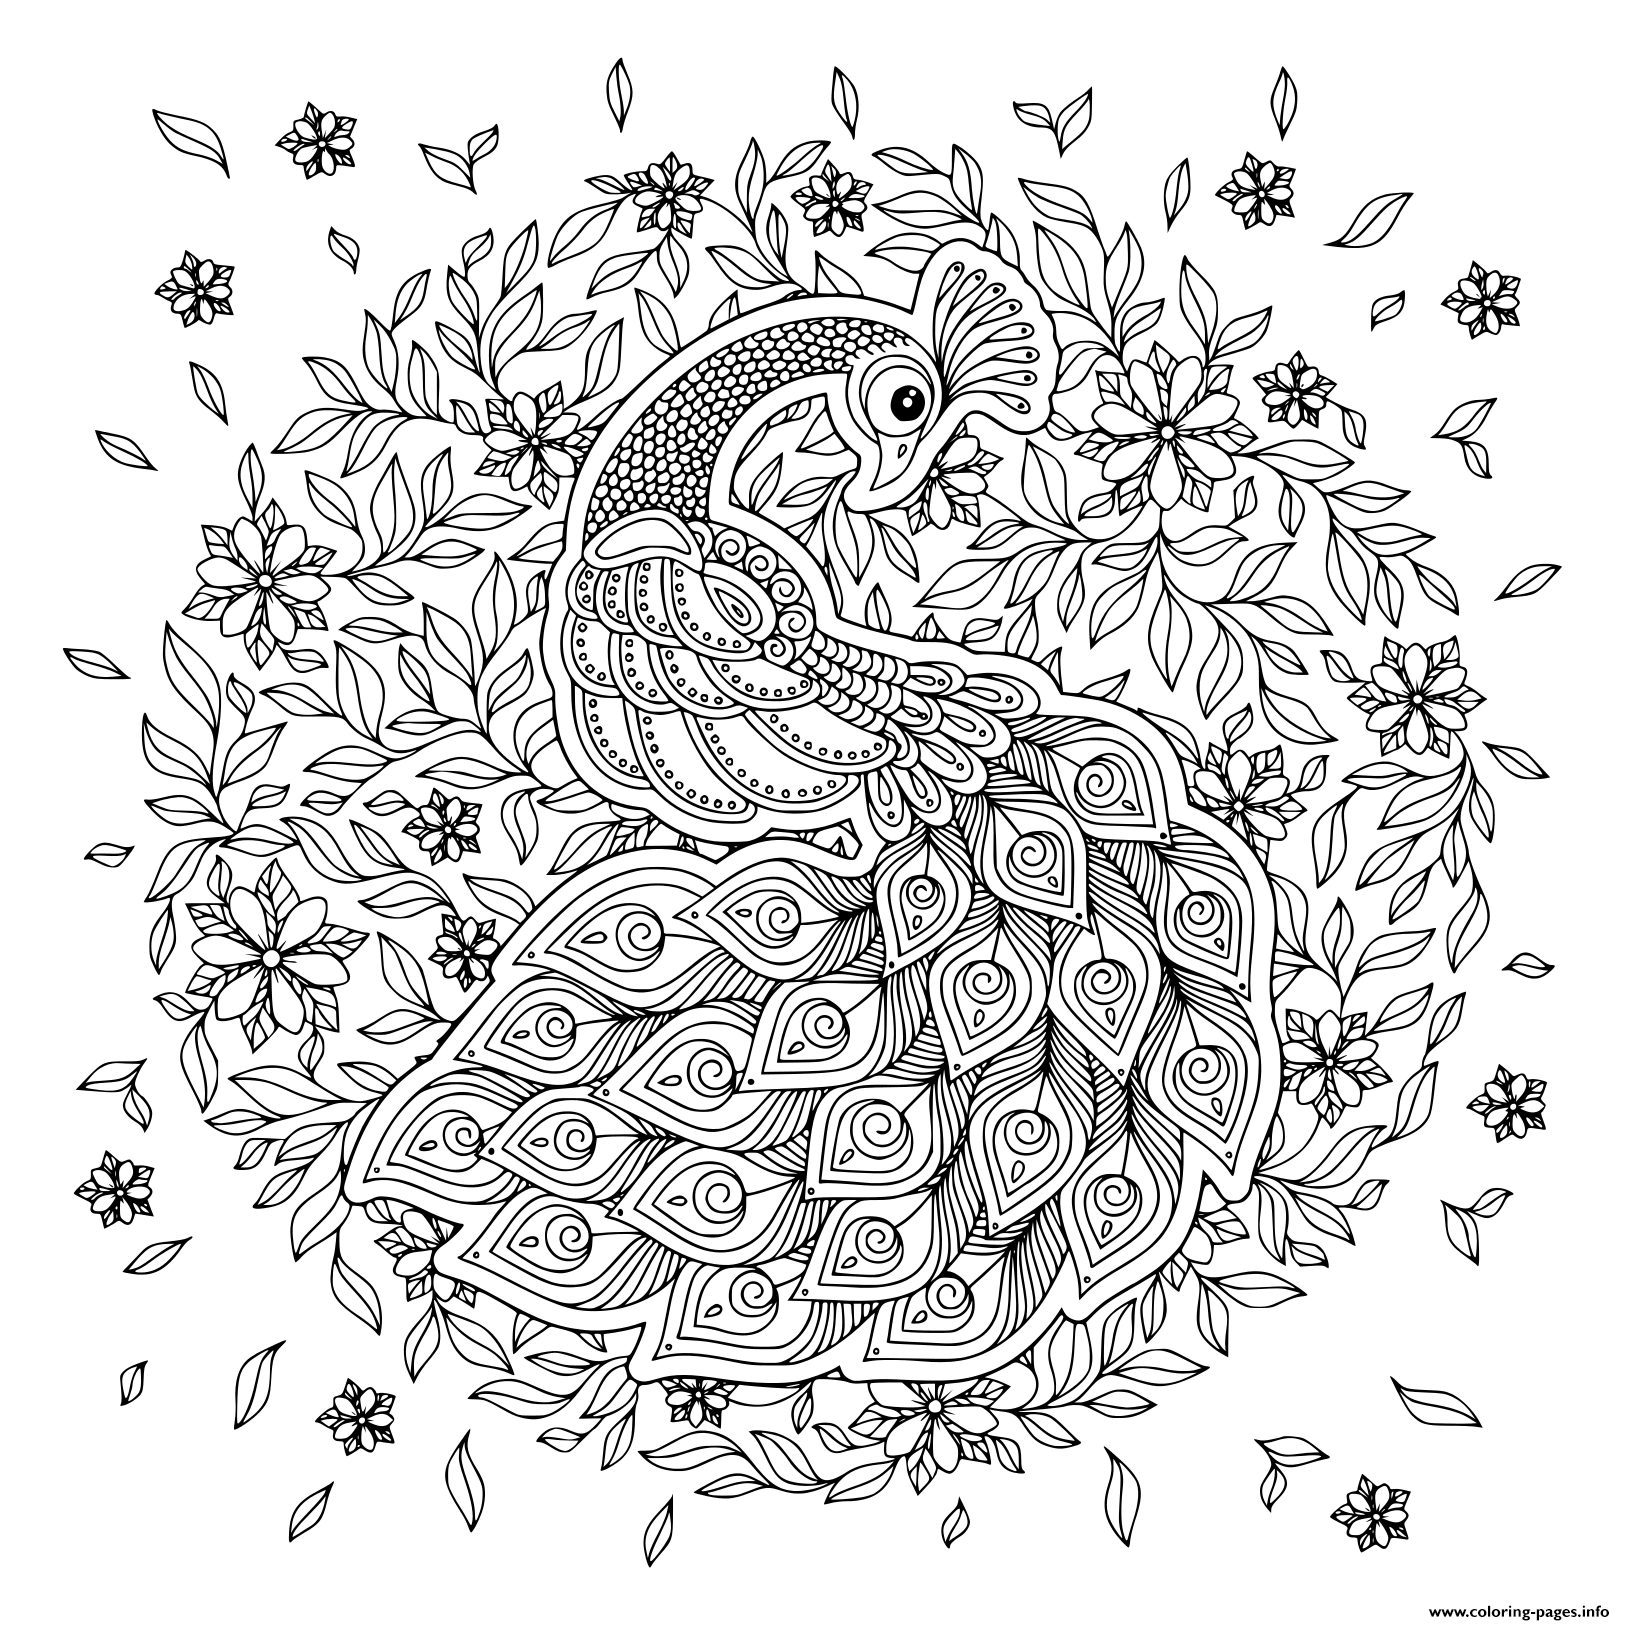 Pin On Free Adults Coloring Pages To Print